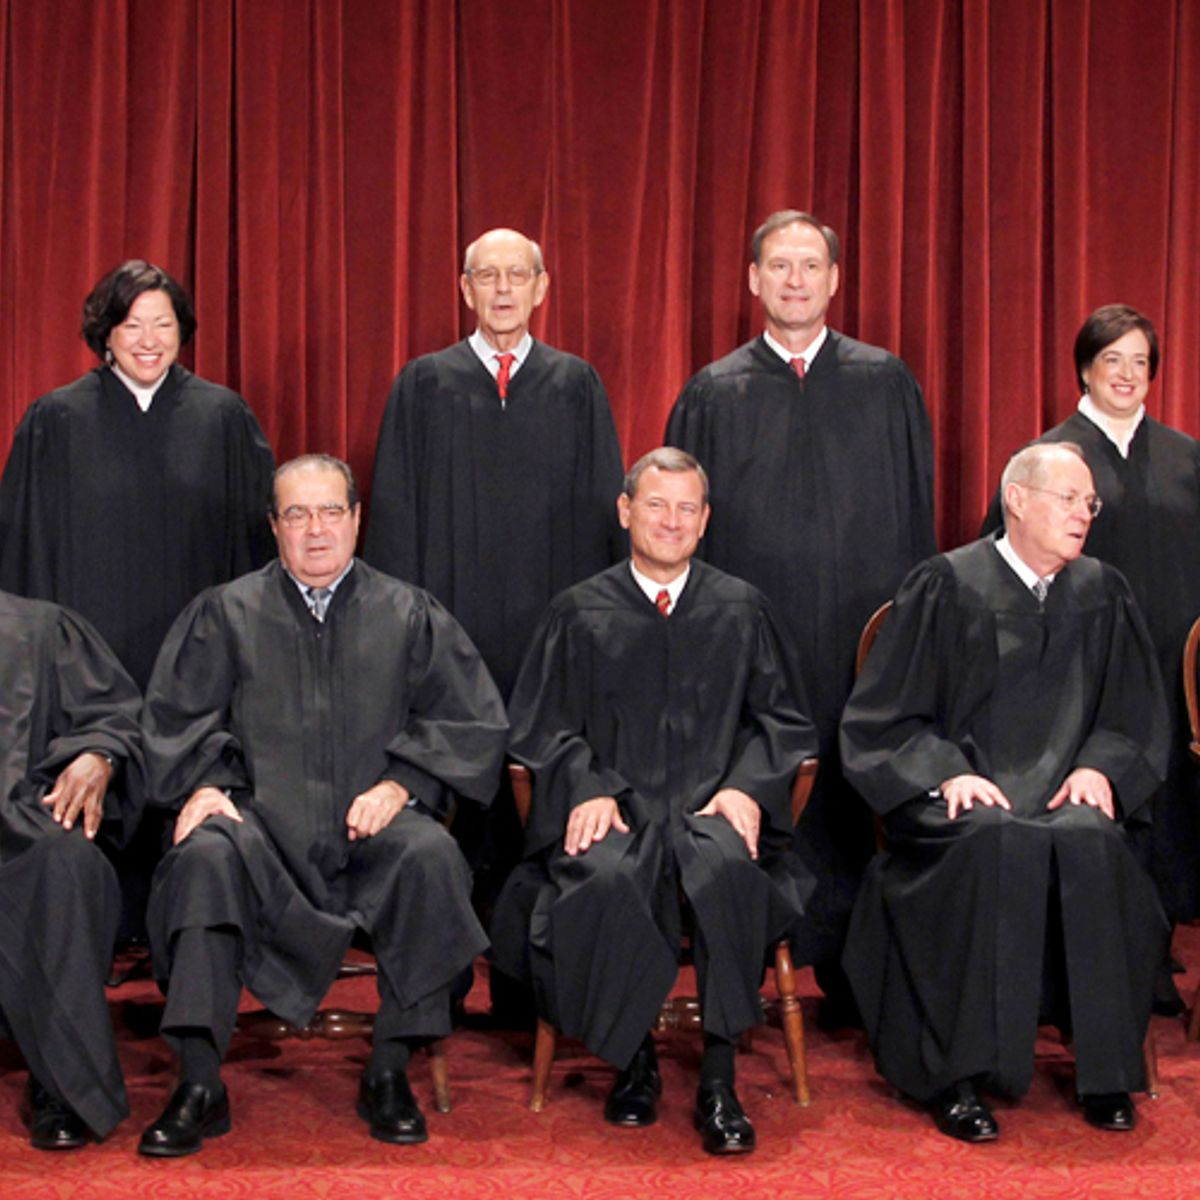 Justices Ginsburg, Sotomayor and Kagan come out swinging against Hobby Lobby corporate religion claim